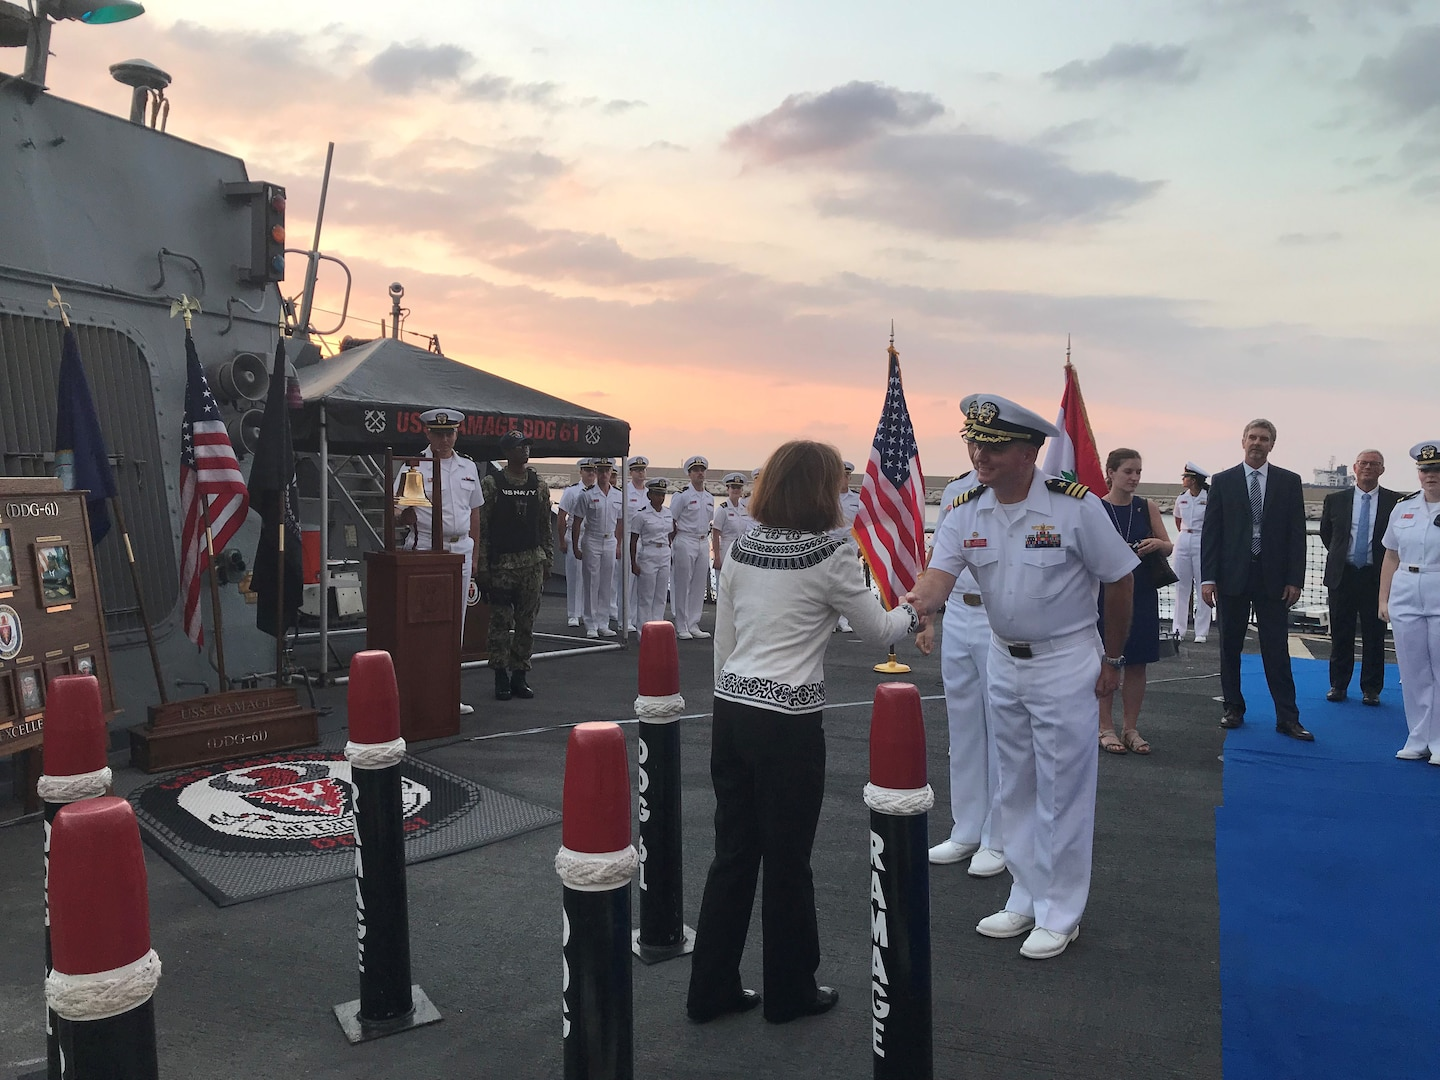 190915-N-N0146-001 BEIRUT, Lebanon (Sept. 15, 2019) Cmdr. John B. Benfield, commanding officer of the guided-missile destroyer USS Ramage (DDG 61), greets U.S. Ambassador to Lebanon, Elizabeth Richard, during a reception. Ramage made an historic port visit to Beirut on Sept. 14, the first time in 36 years a U.S. warship had pulled into the country. (U.S. Navy photo/Released)